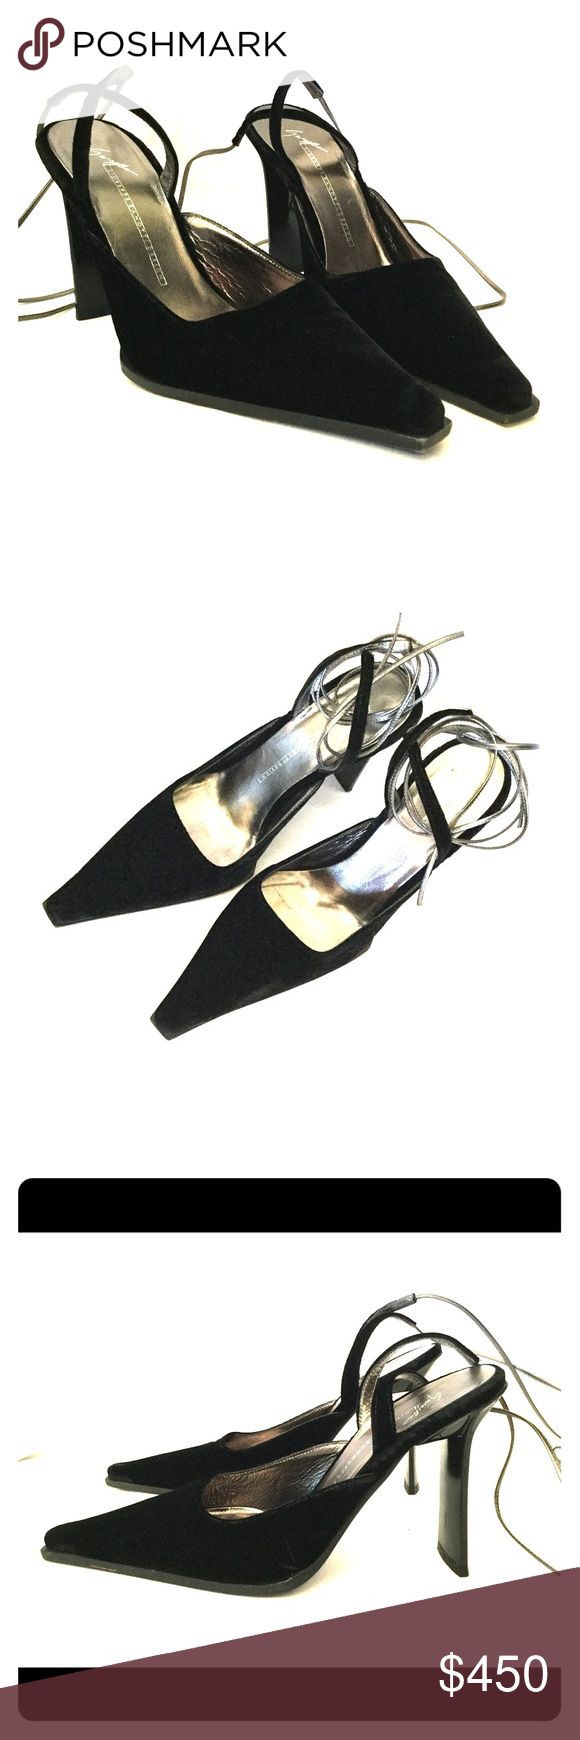 Giuseppe Zanotti velvet lace-up heels These Giuseppe Zanotti heels feature black velvet with a silver lace-up design. These heels are in excellent condition with only minor signs of wear near edges of soles. Please see photos for details Giuseppe Zanotti Shoes Heels